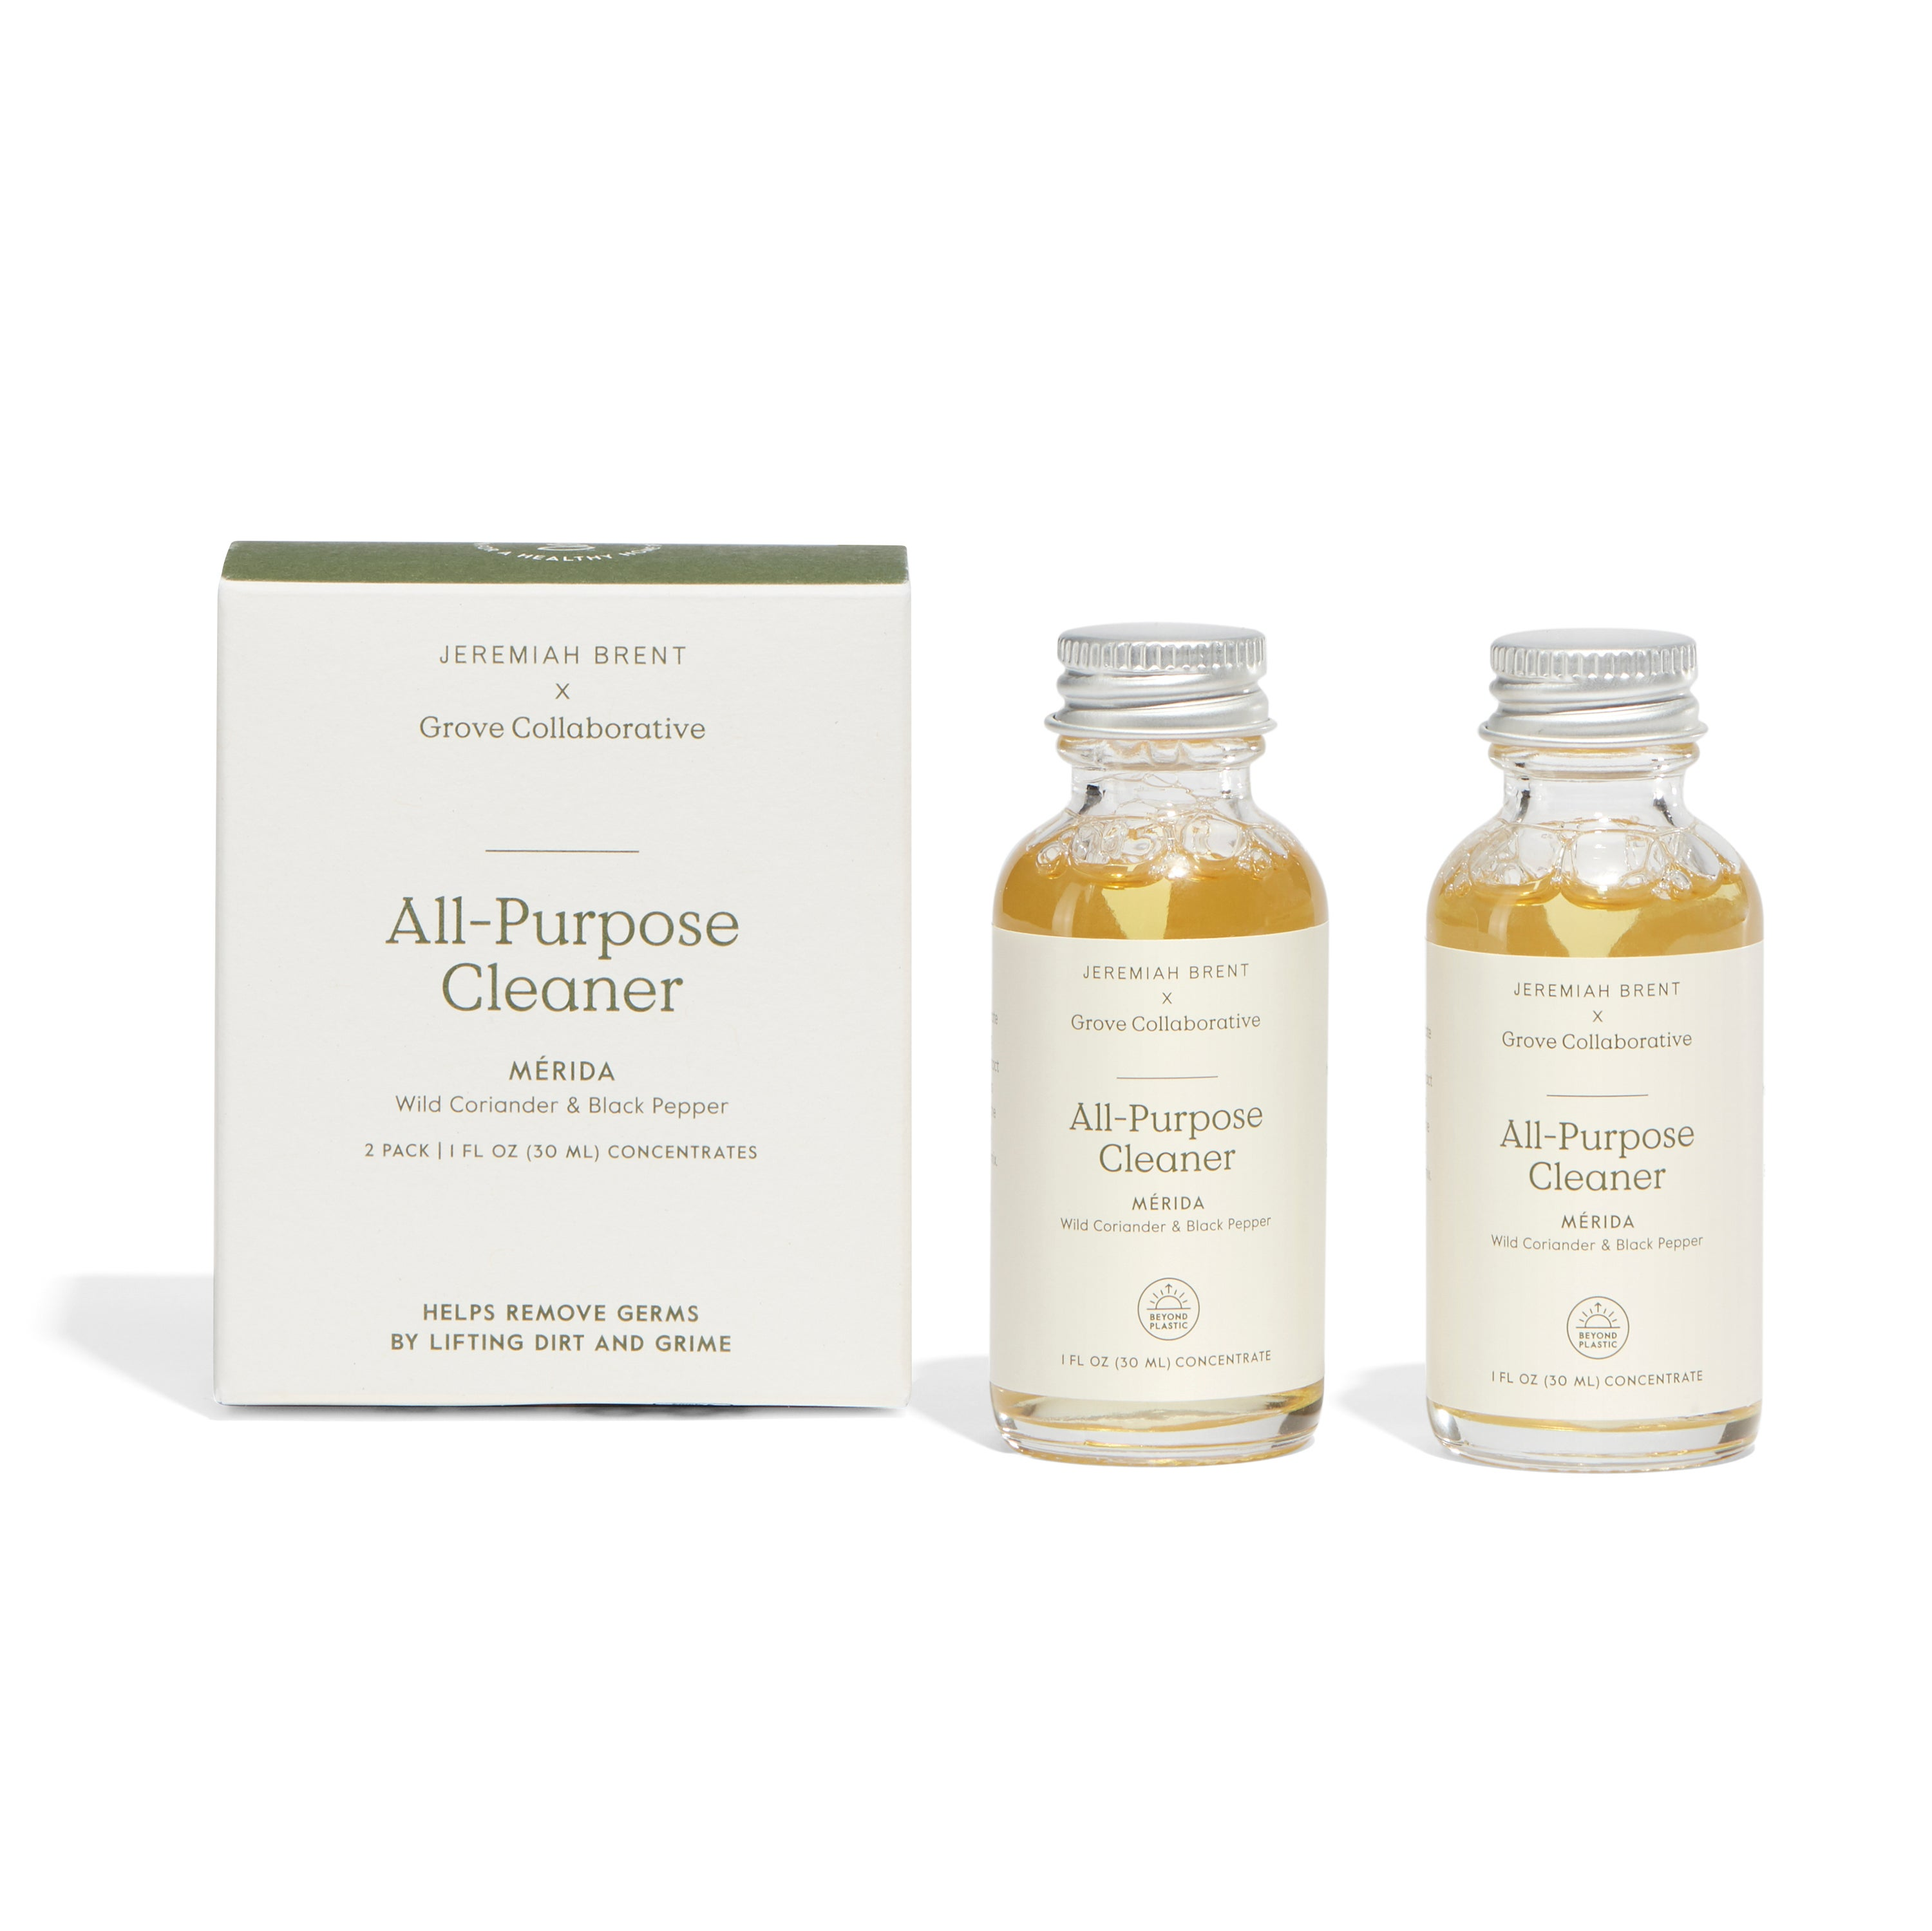 00044_2020-08-27-KH-Jeremiah Brent-all purpose cleaner with bottles-small-front